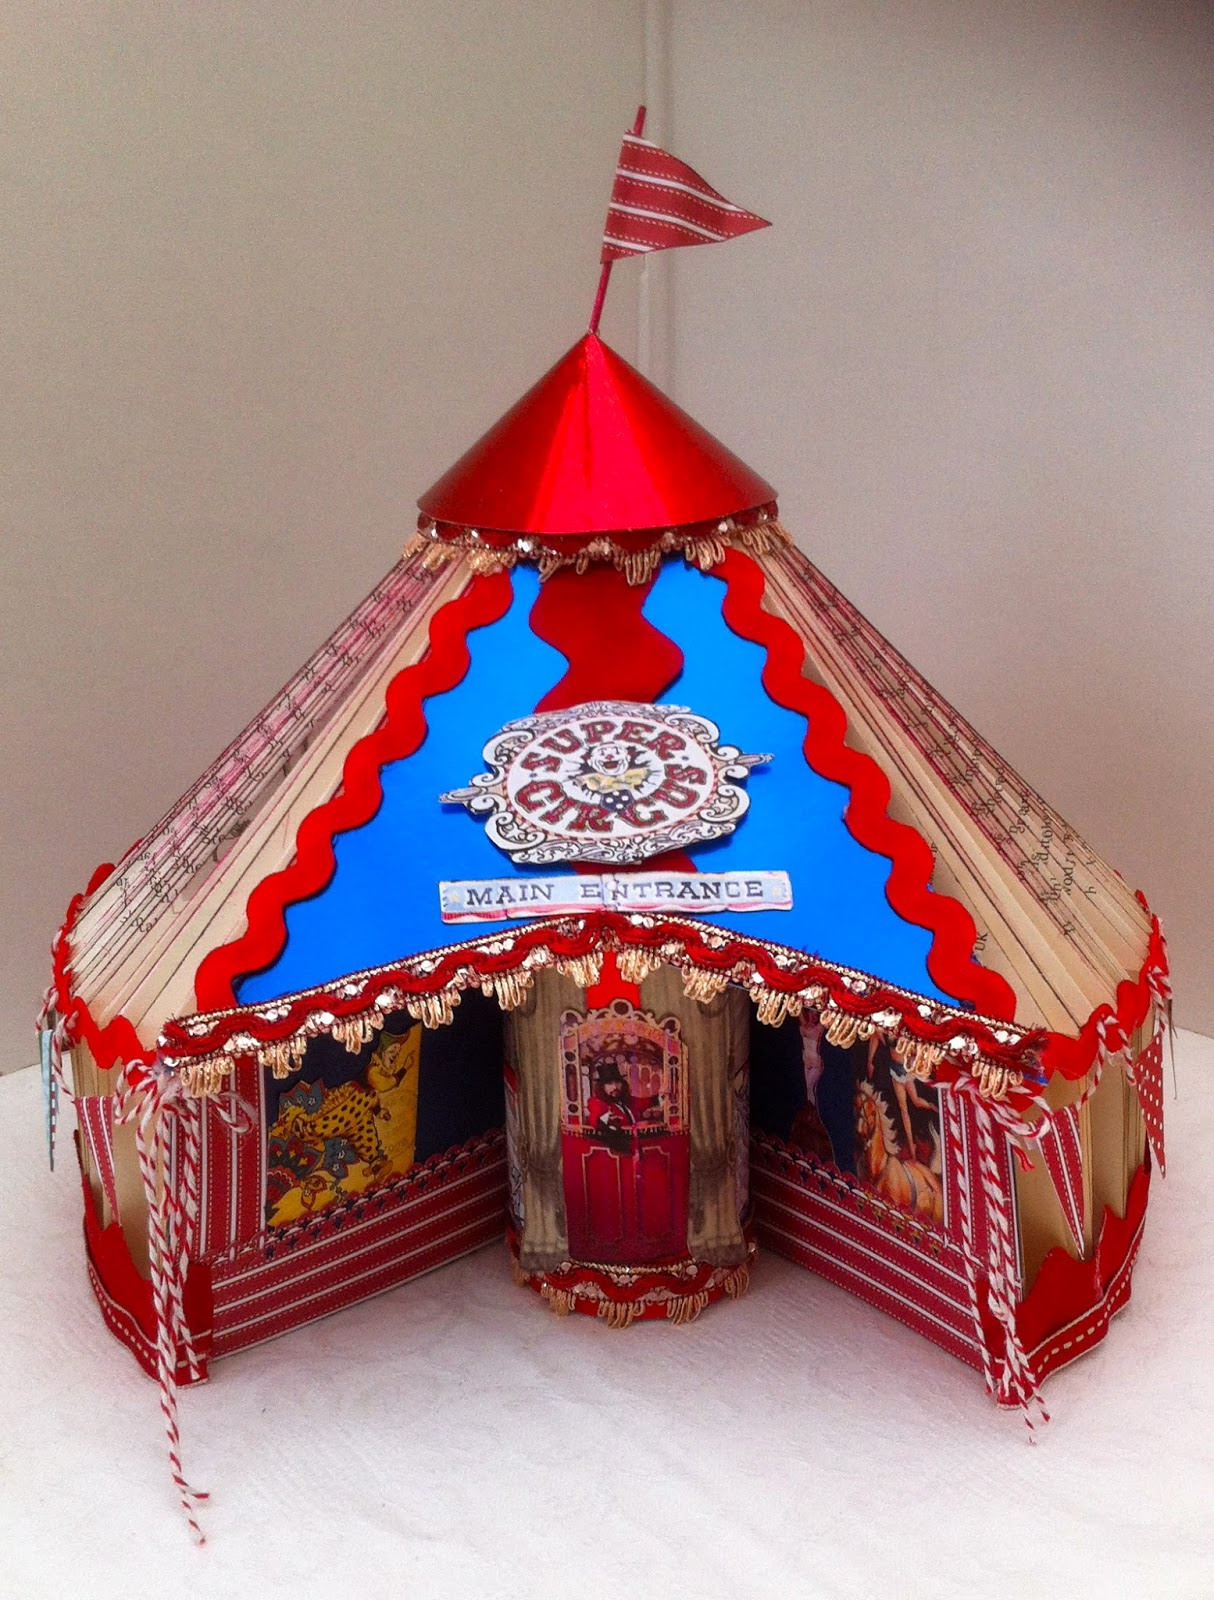 Circus Tent Made from a Folded Book & Cards2Inspire: Circus Tent Made from a Folded Book